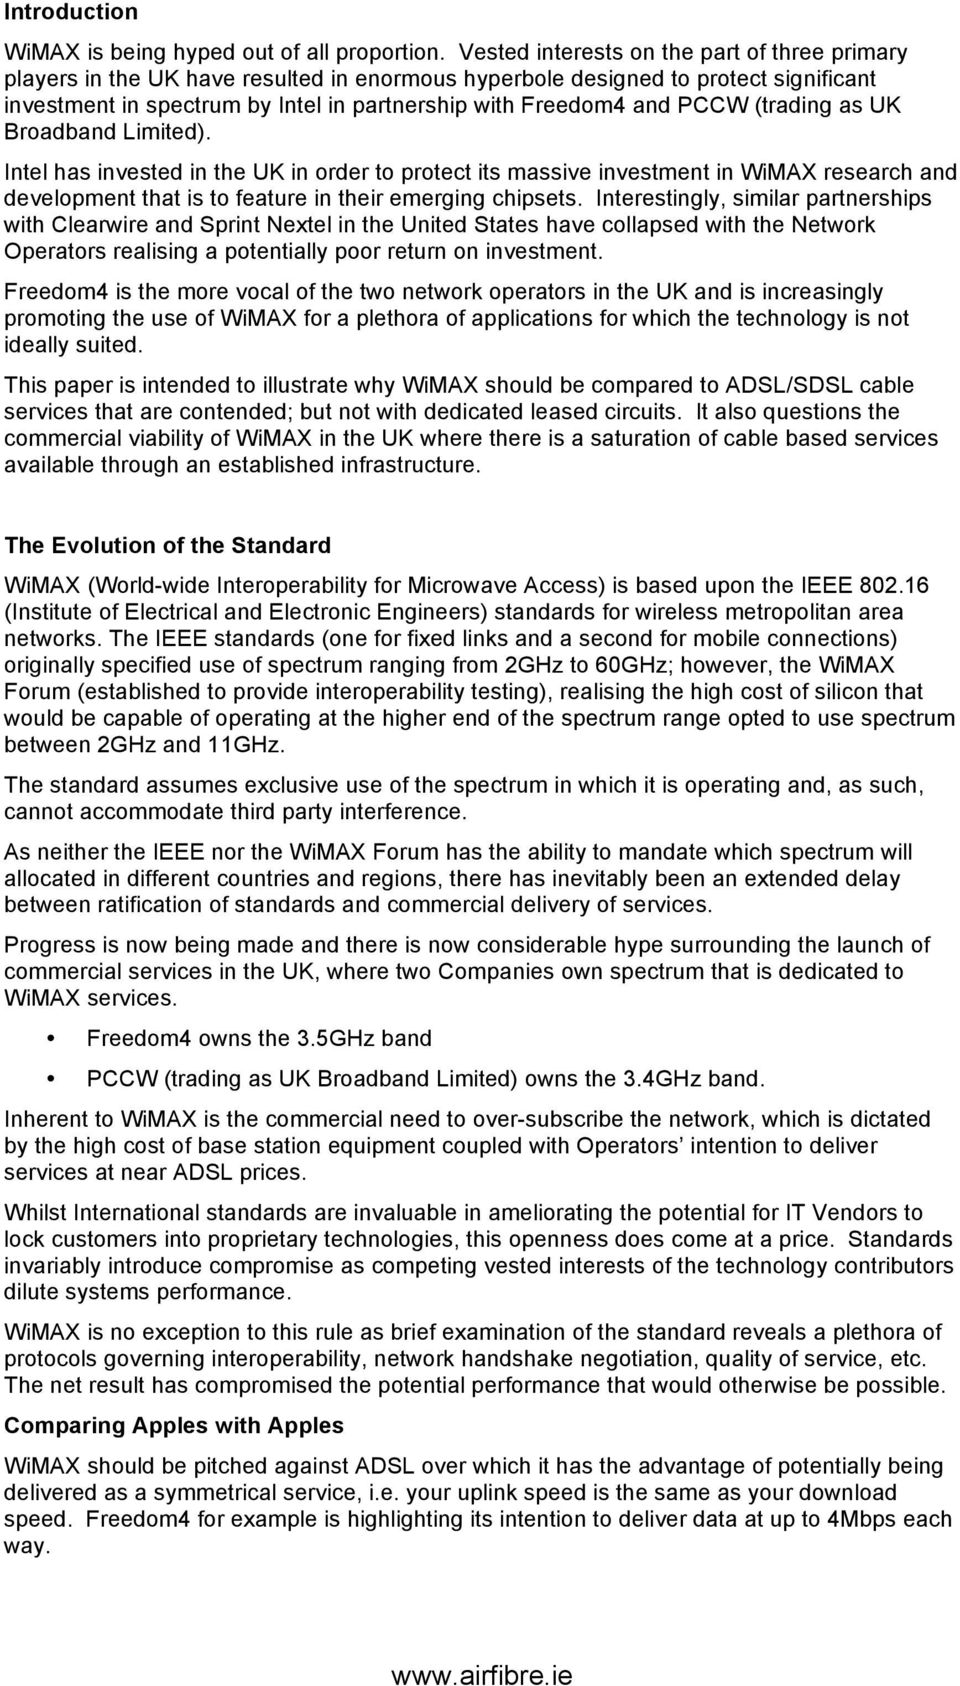 PCCW (trading as UK Broadband Limited). Intel has invested in the UK in order to protect its massive investment in WiMAX research and development that is to feature in their emerging chipsets.